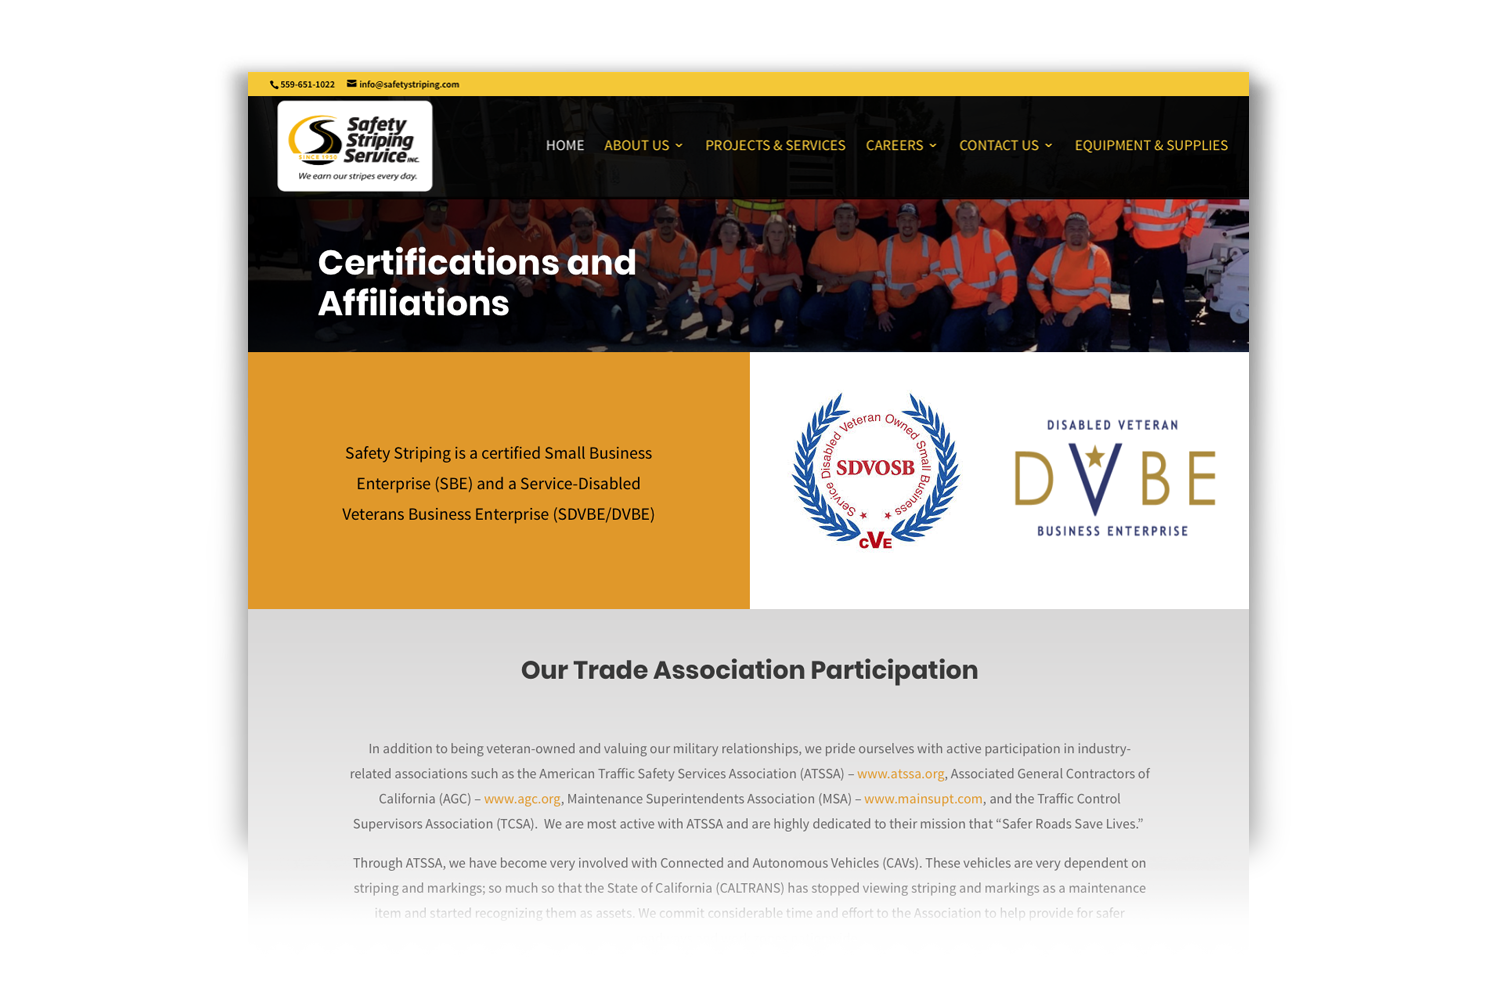 Safety Striping Service Website, Certification page designed by DMI Agency_branding update and new website